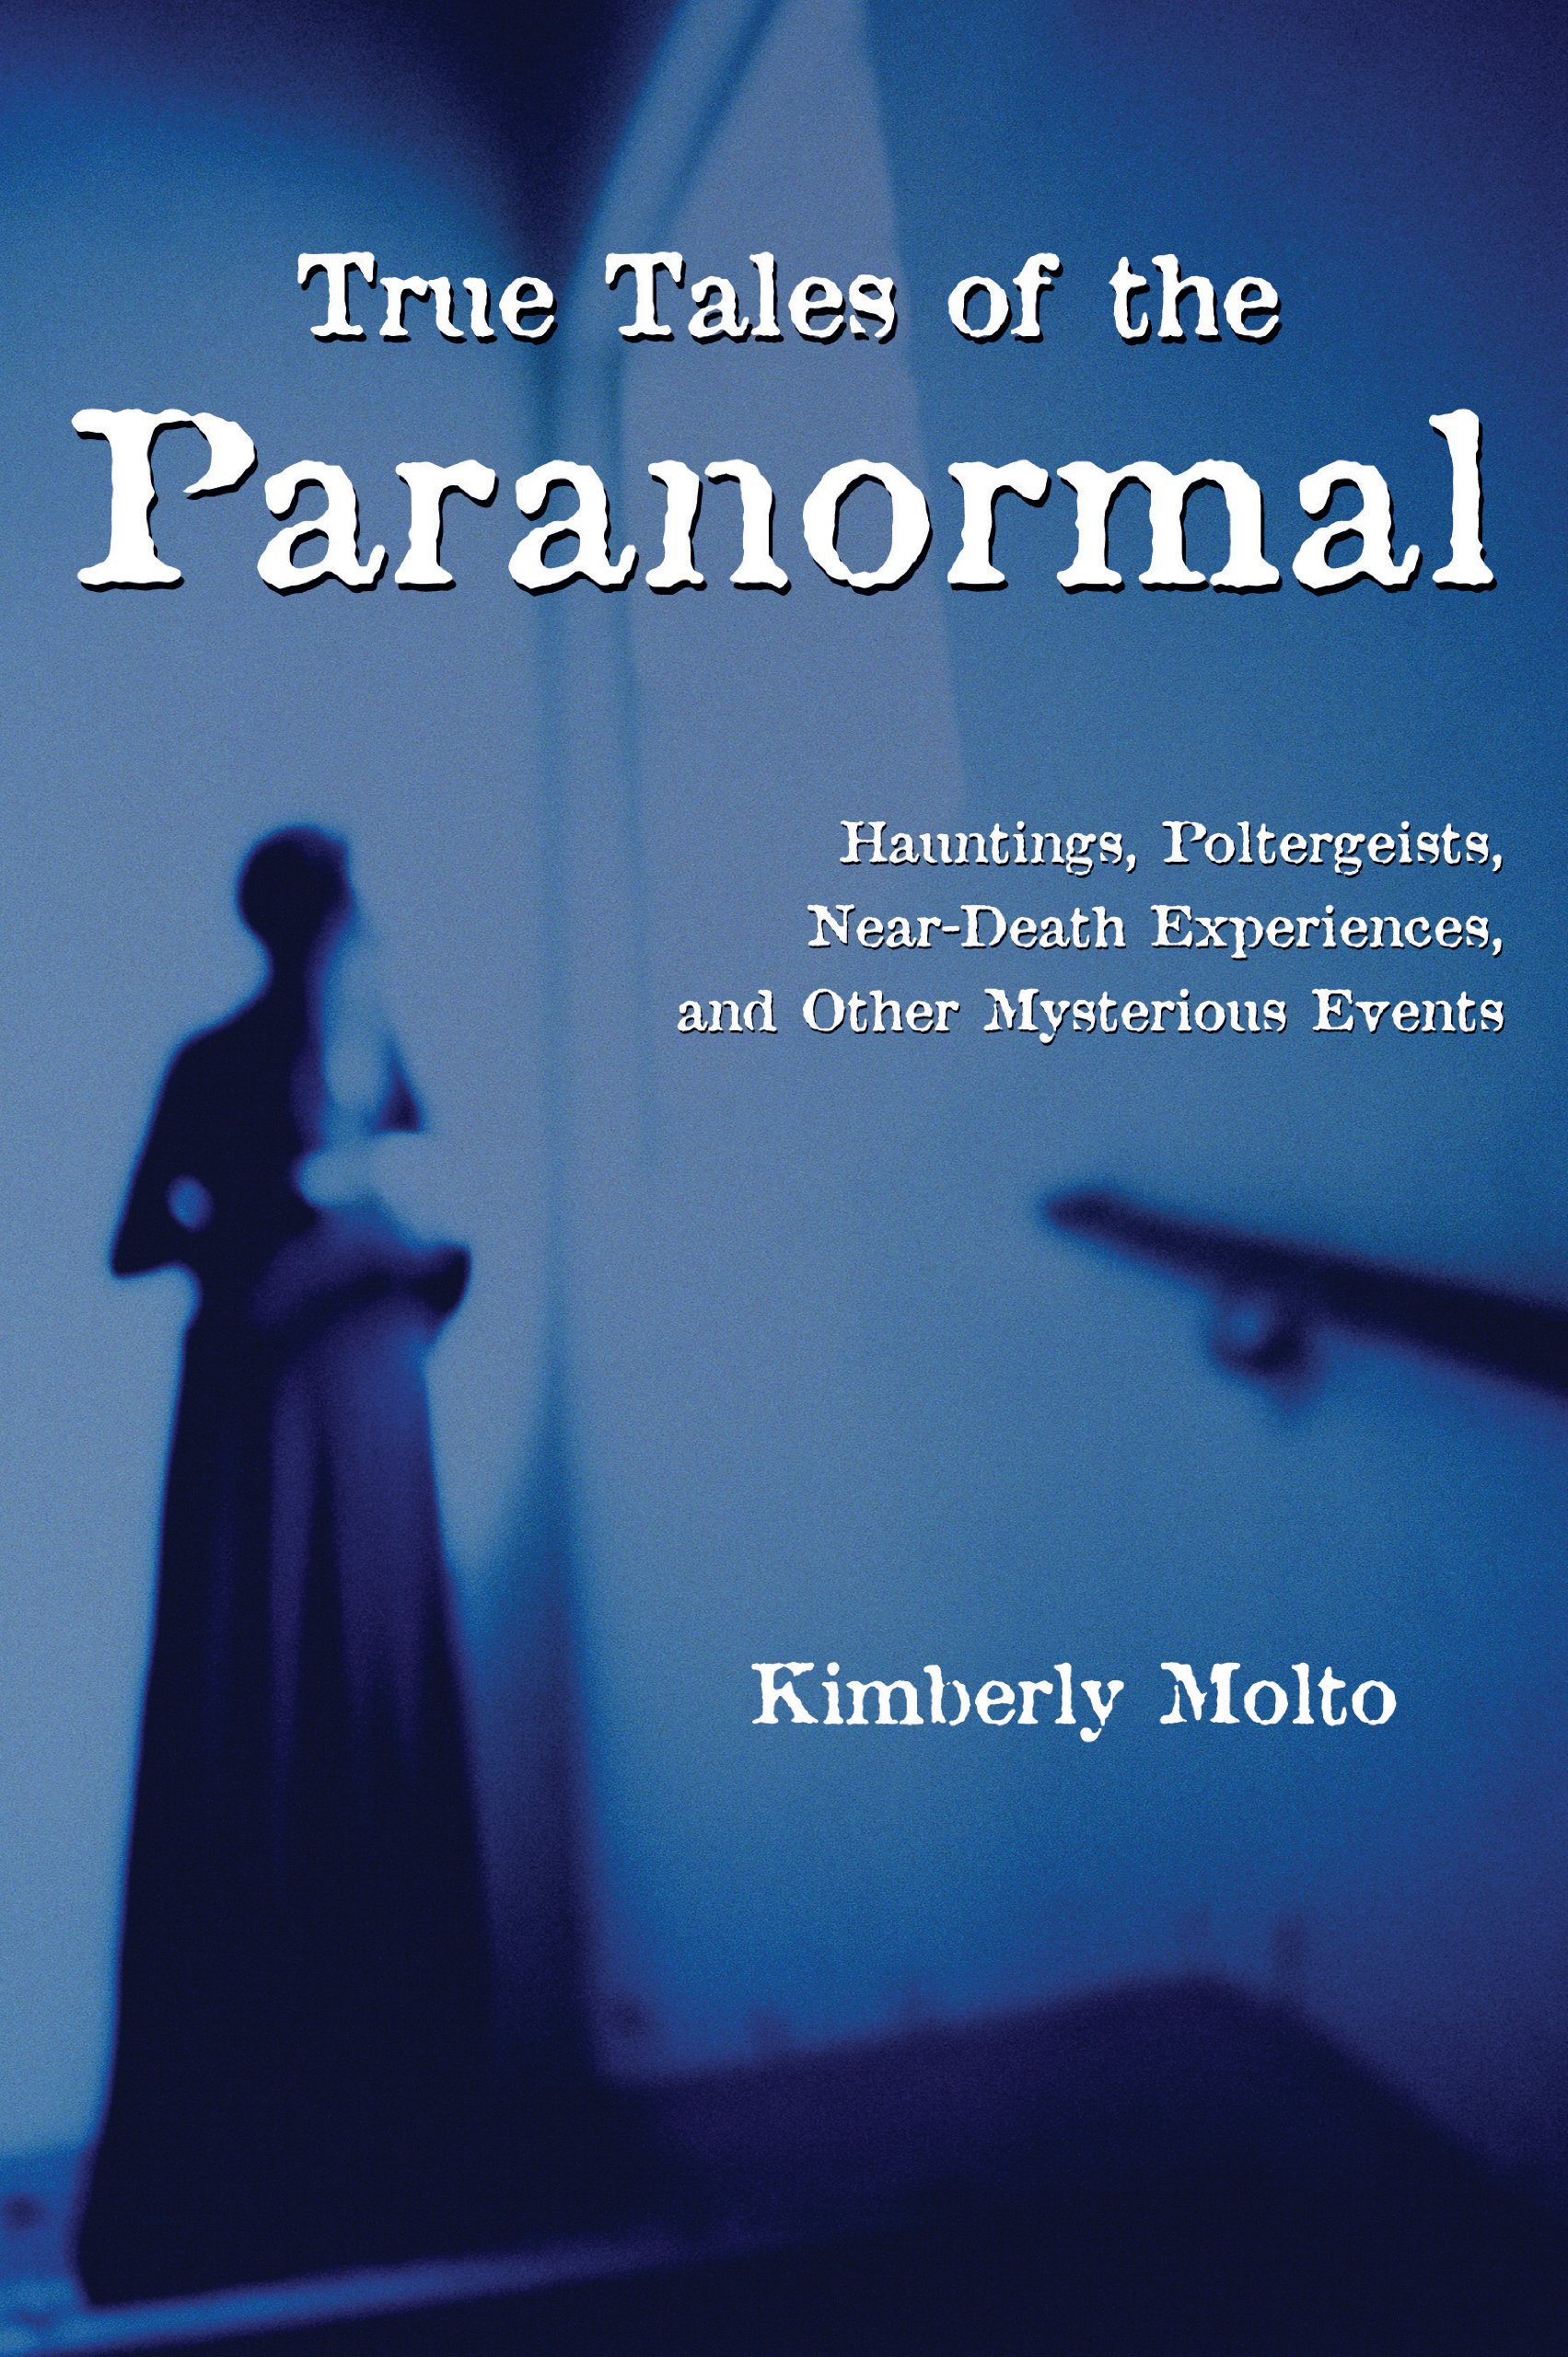 True Tales of the Paranormal: Hauntings, Poltergeists, Near Death Experiences, and Other Mysterious Events PDF